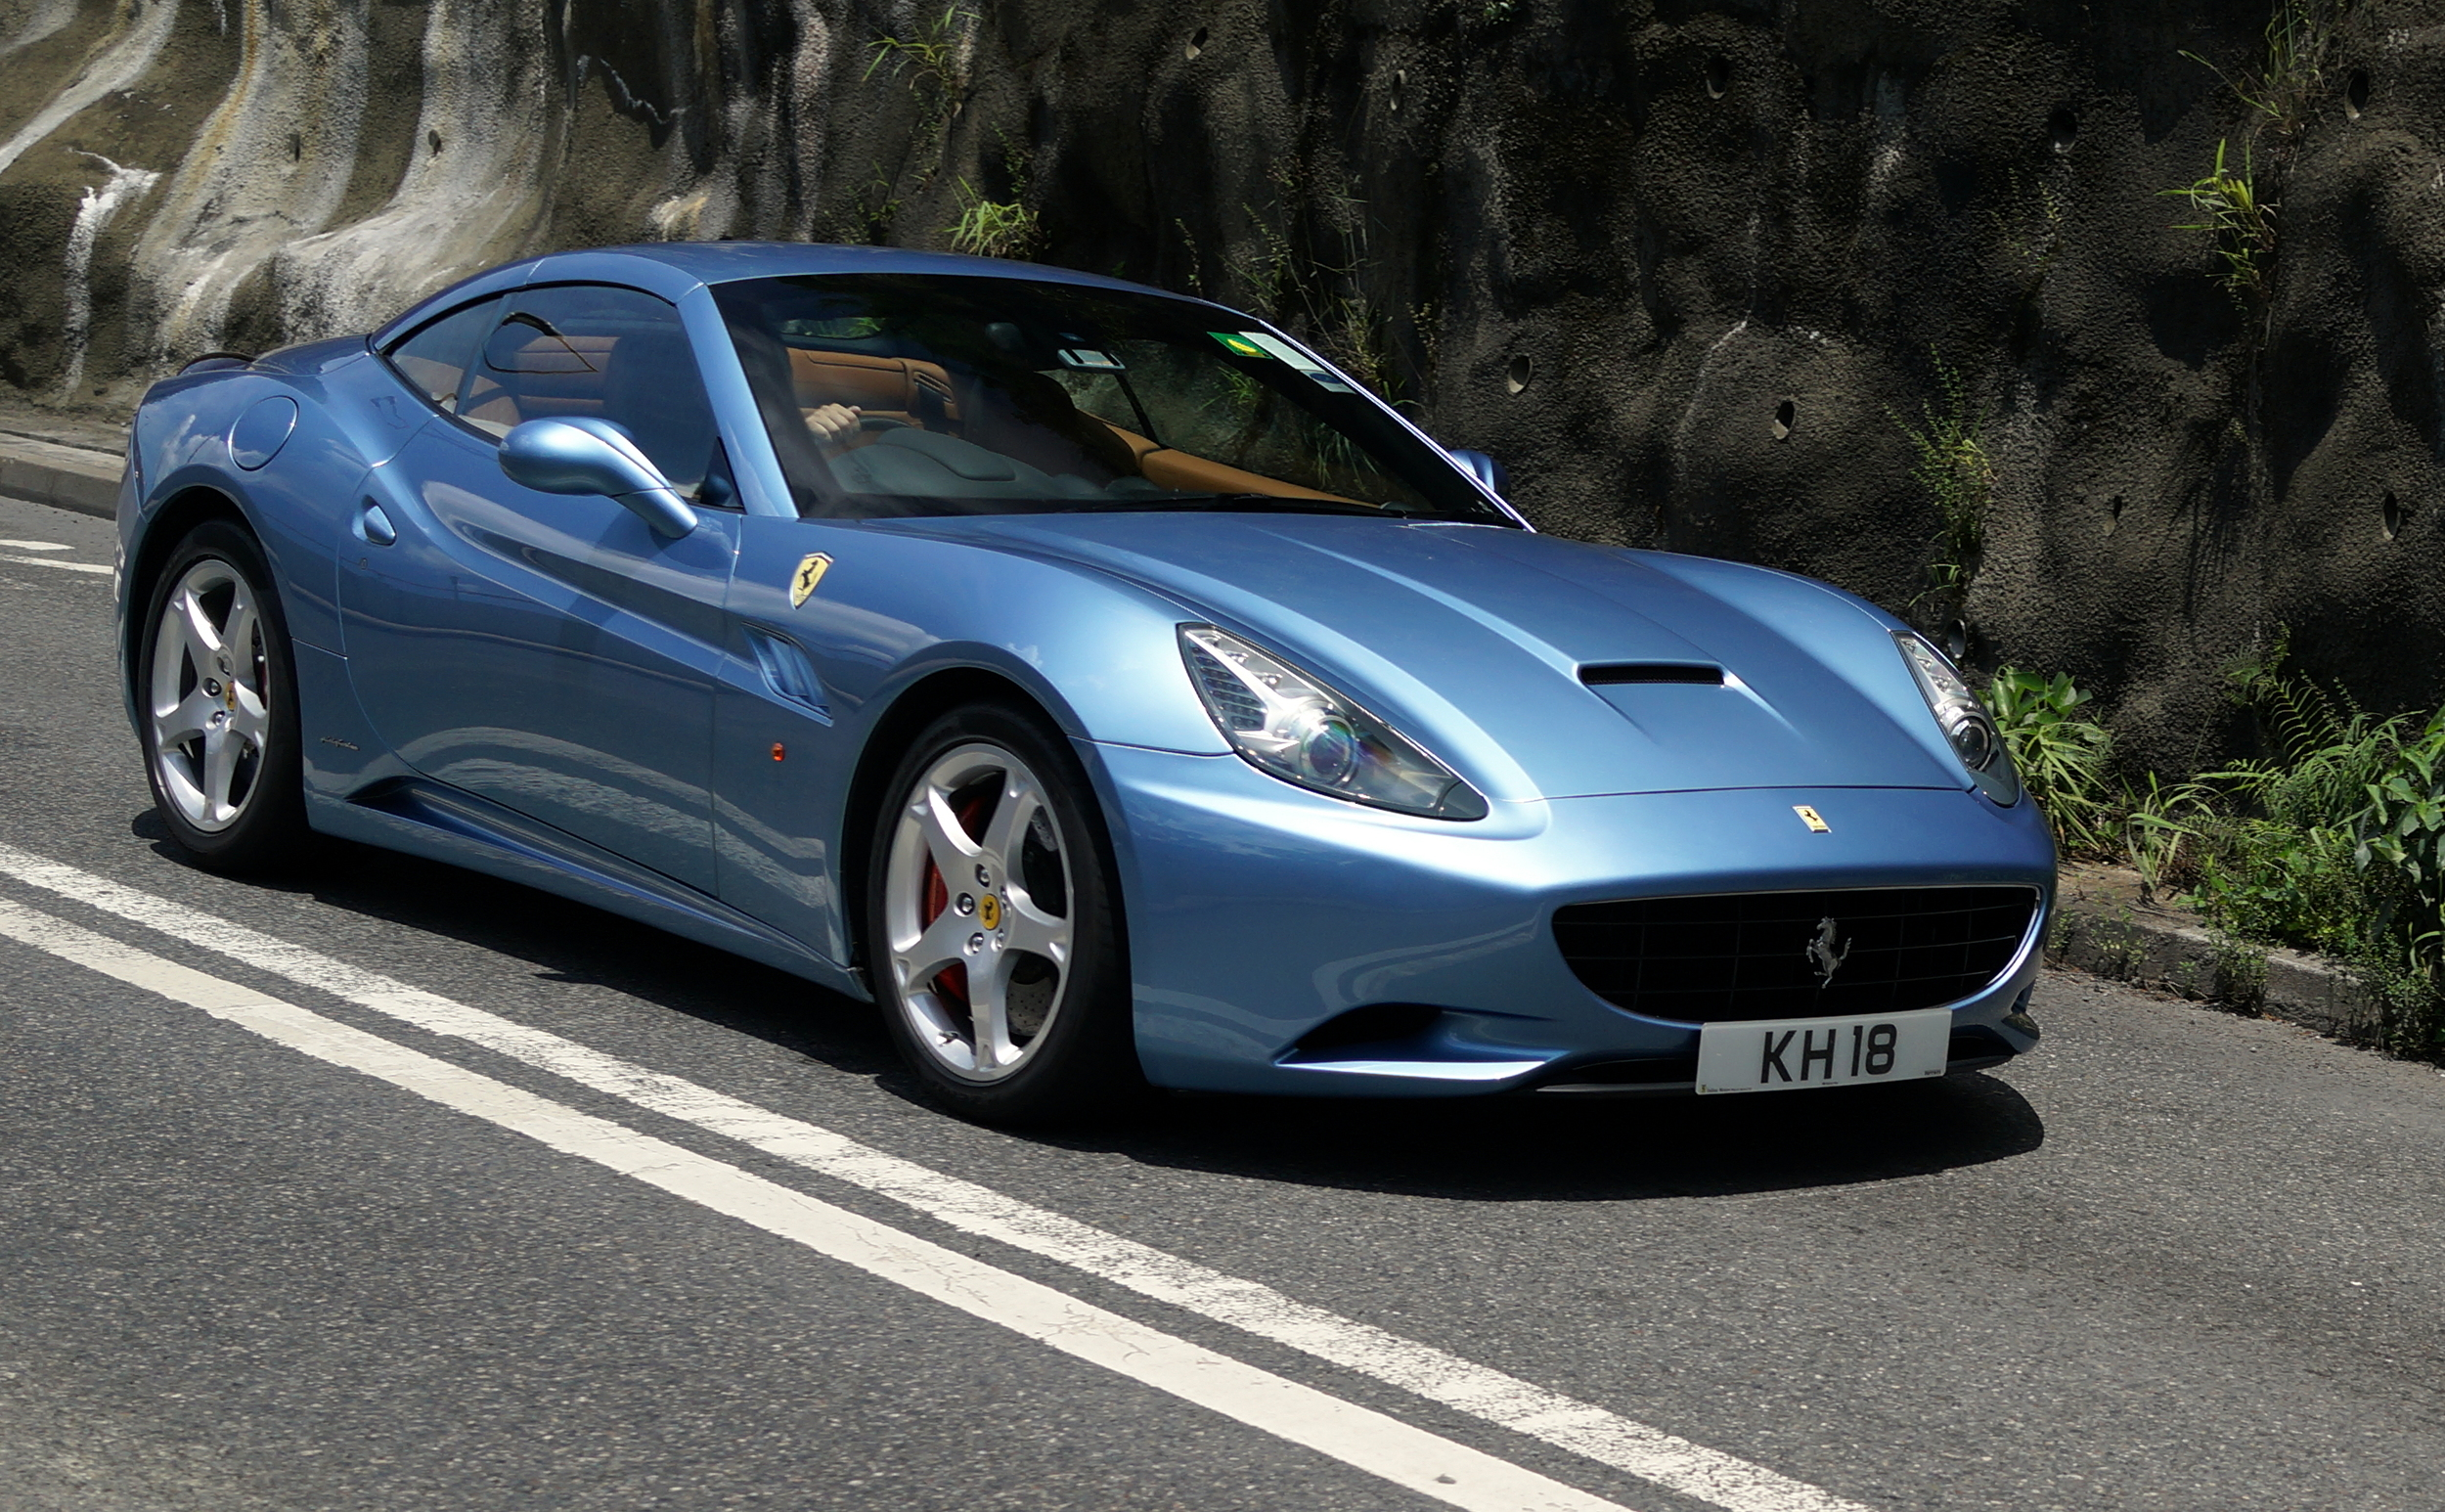 What an absolutely gorgeous Ferrari in a metallic powder blue - AWESOME!